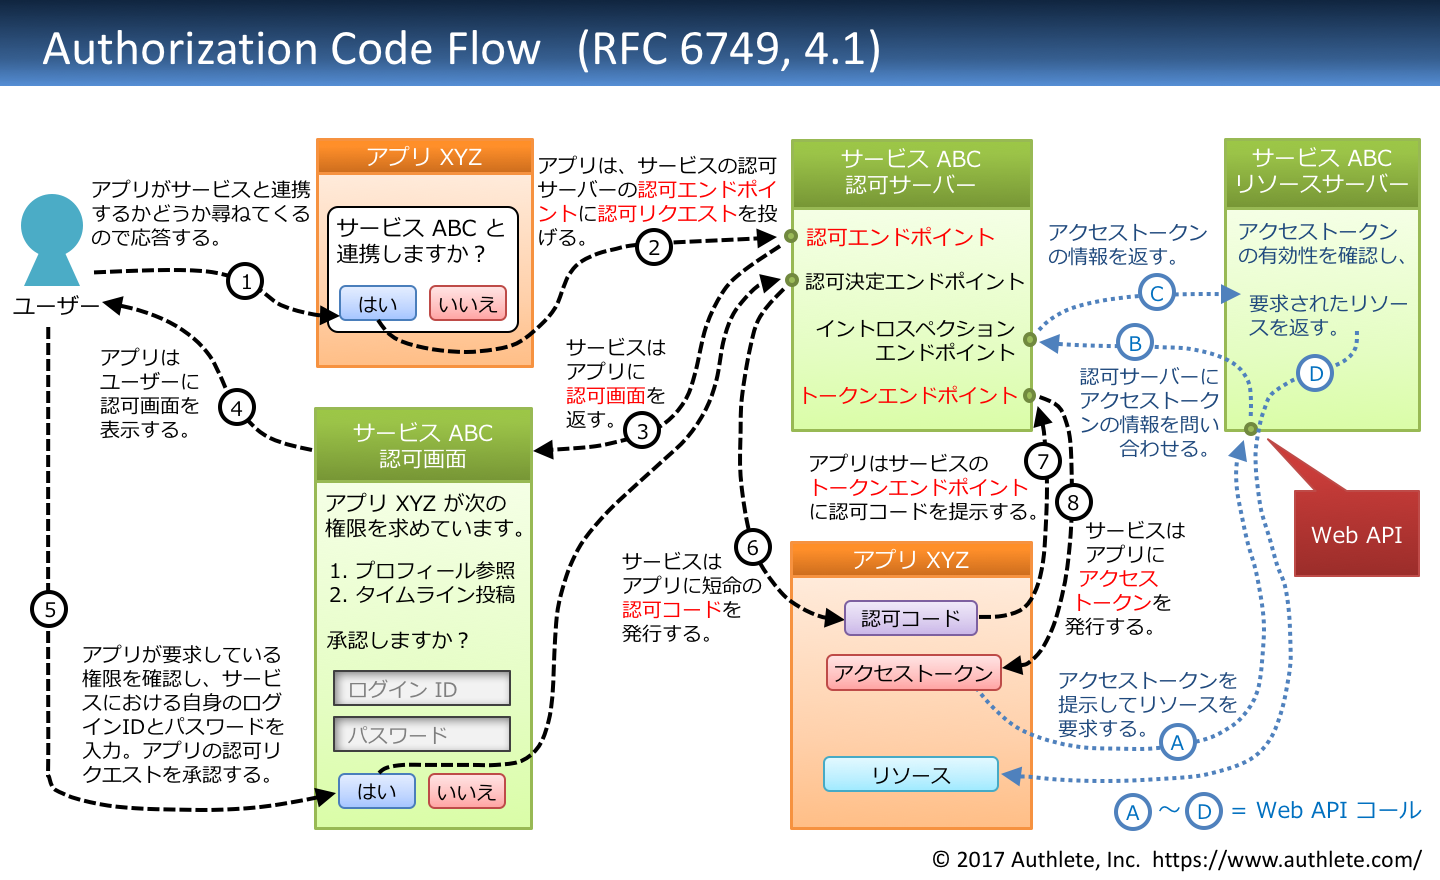 RFC6749-4_1-authorization_code_flow-Japanese.png